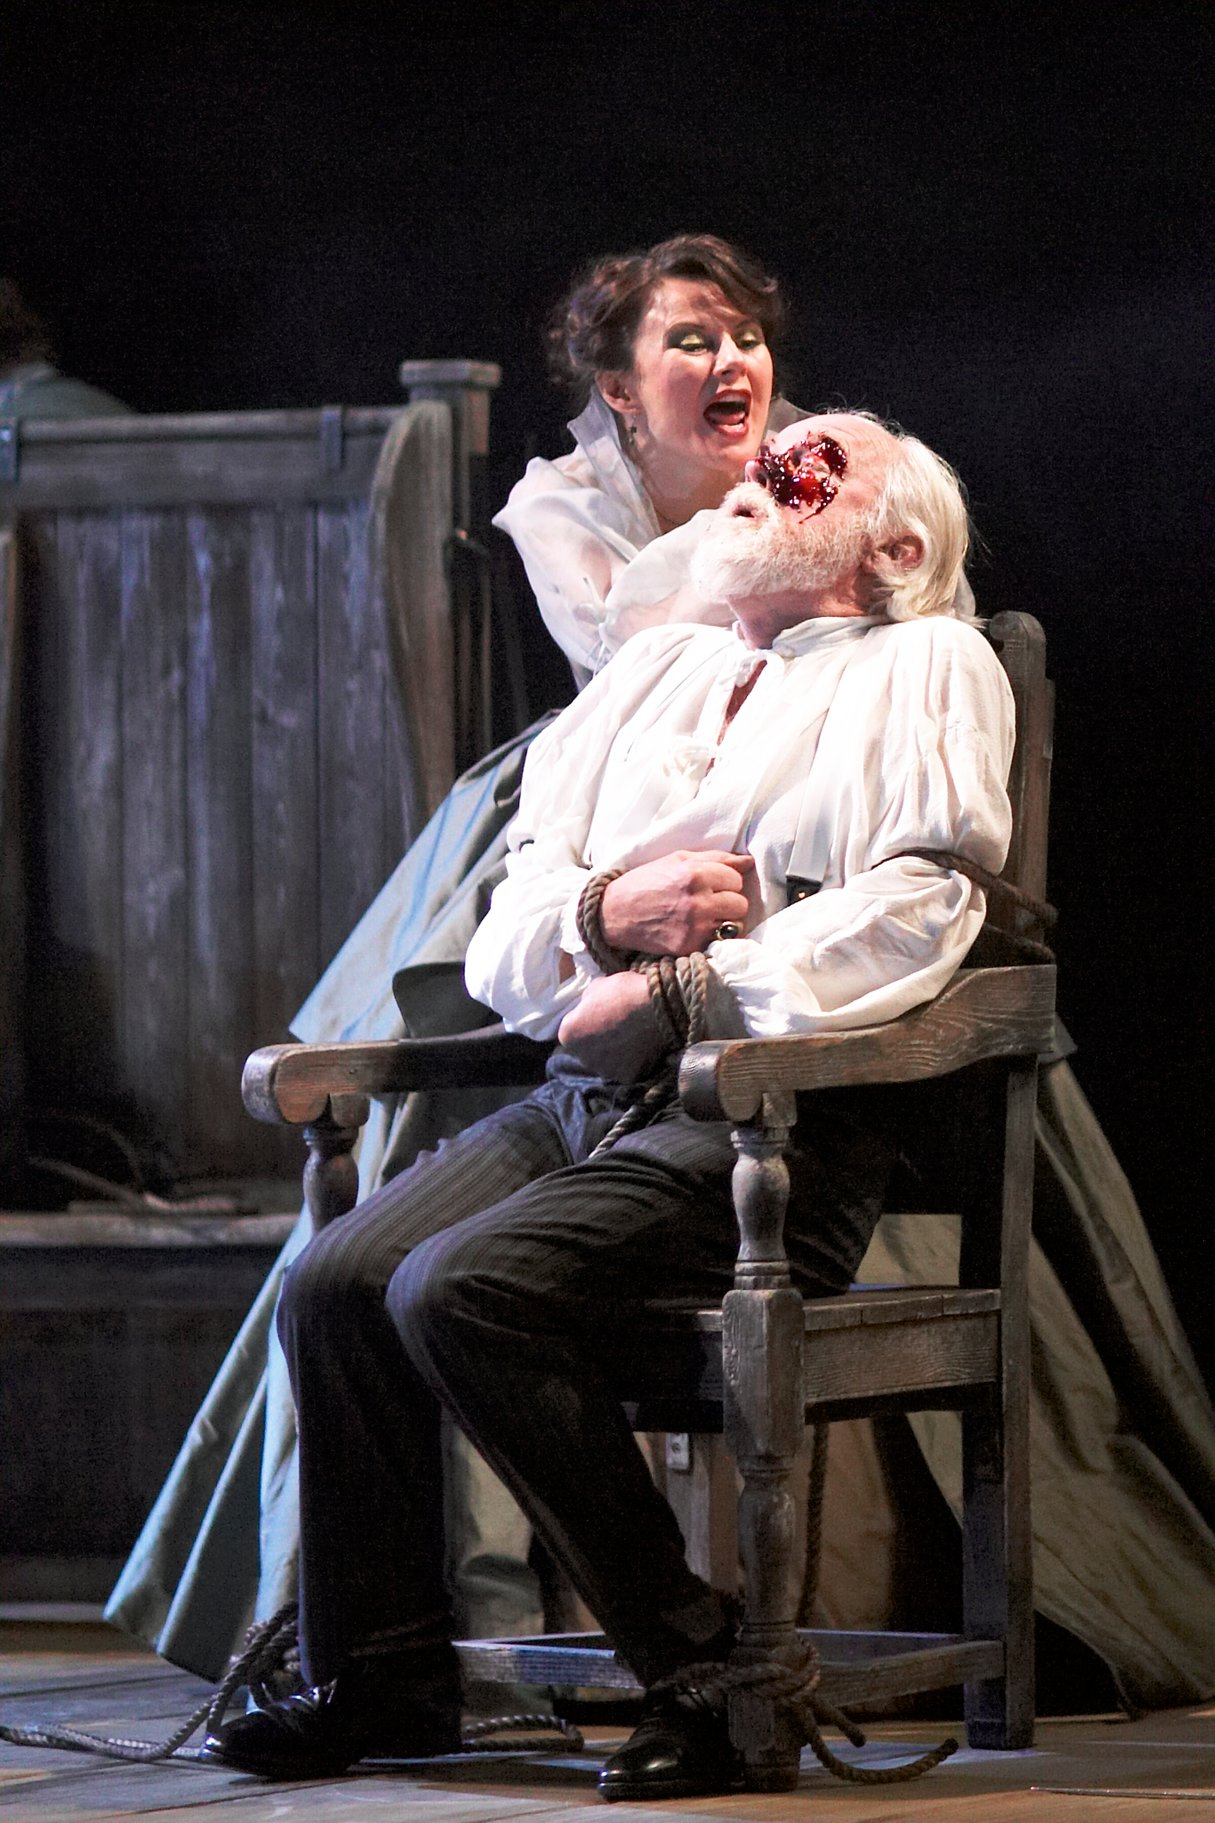 goneril and regan in king lear essay Using a close analysis of the characters' traits, actions and language, carol atherton considers how shakespeare presents goneril, regan.